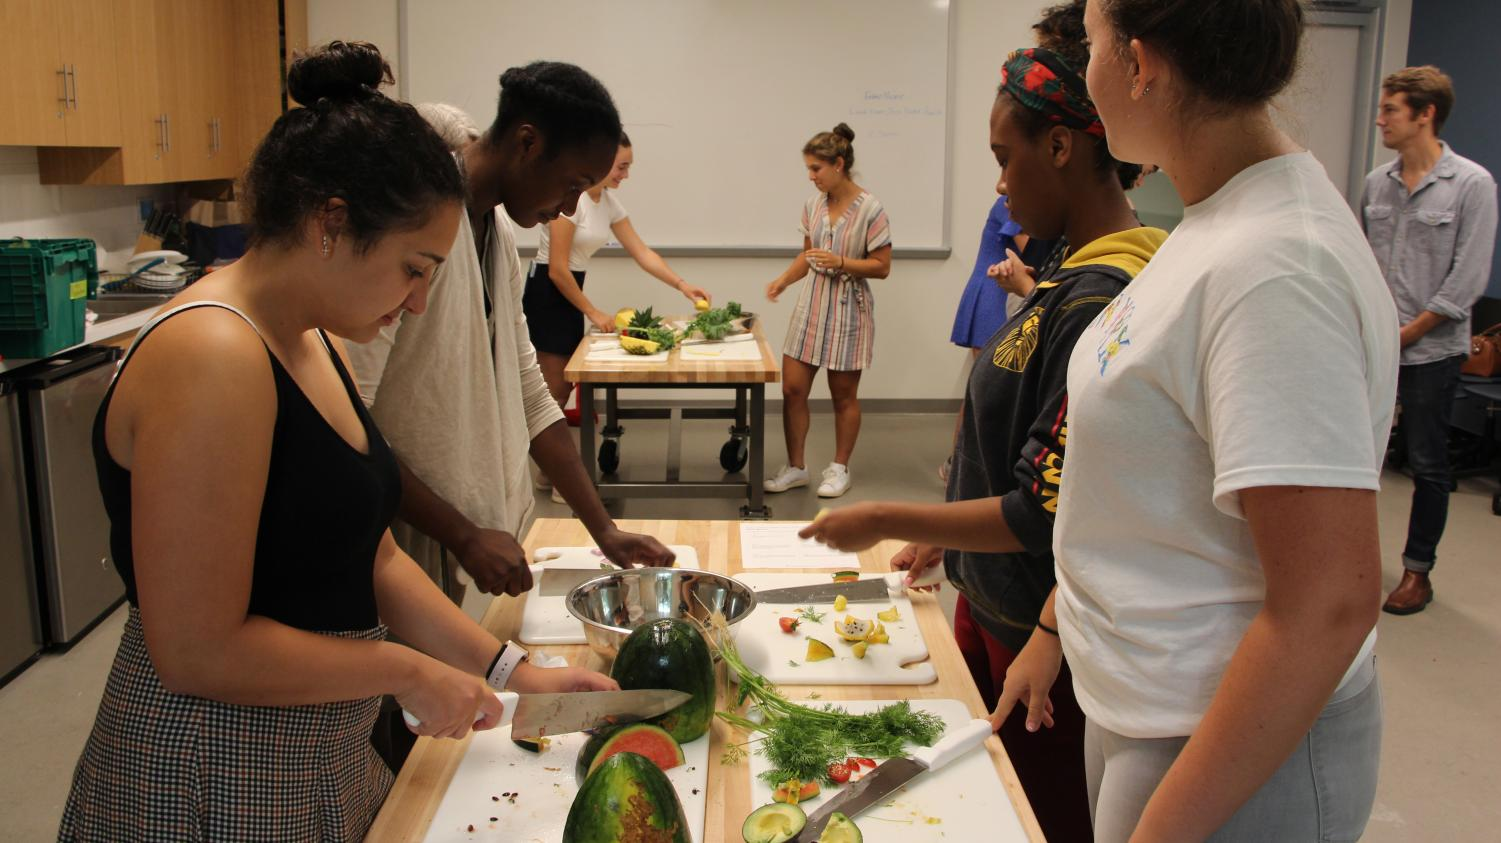 Students cut and prepare the fresh fruits and vegetables that they will put in their salads. After gathering the ingredients, the Stone Barns educators discussed the concept of emulsions and making a dressing that has a healthy balance of oil and an emulsifier.